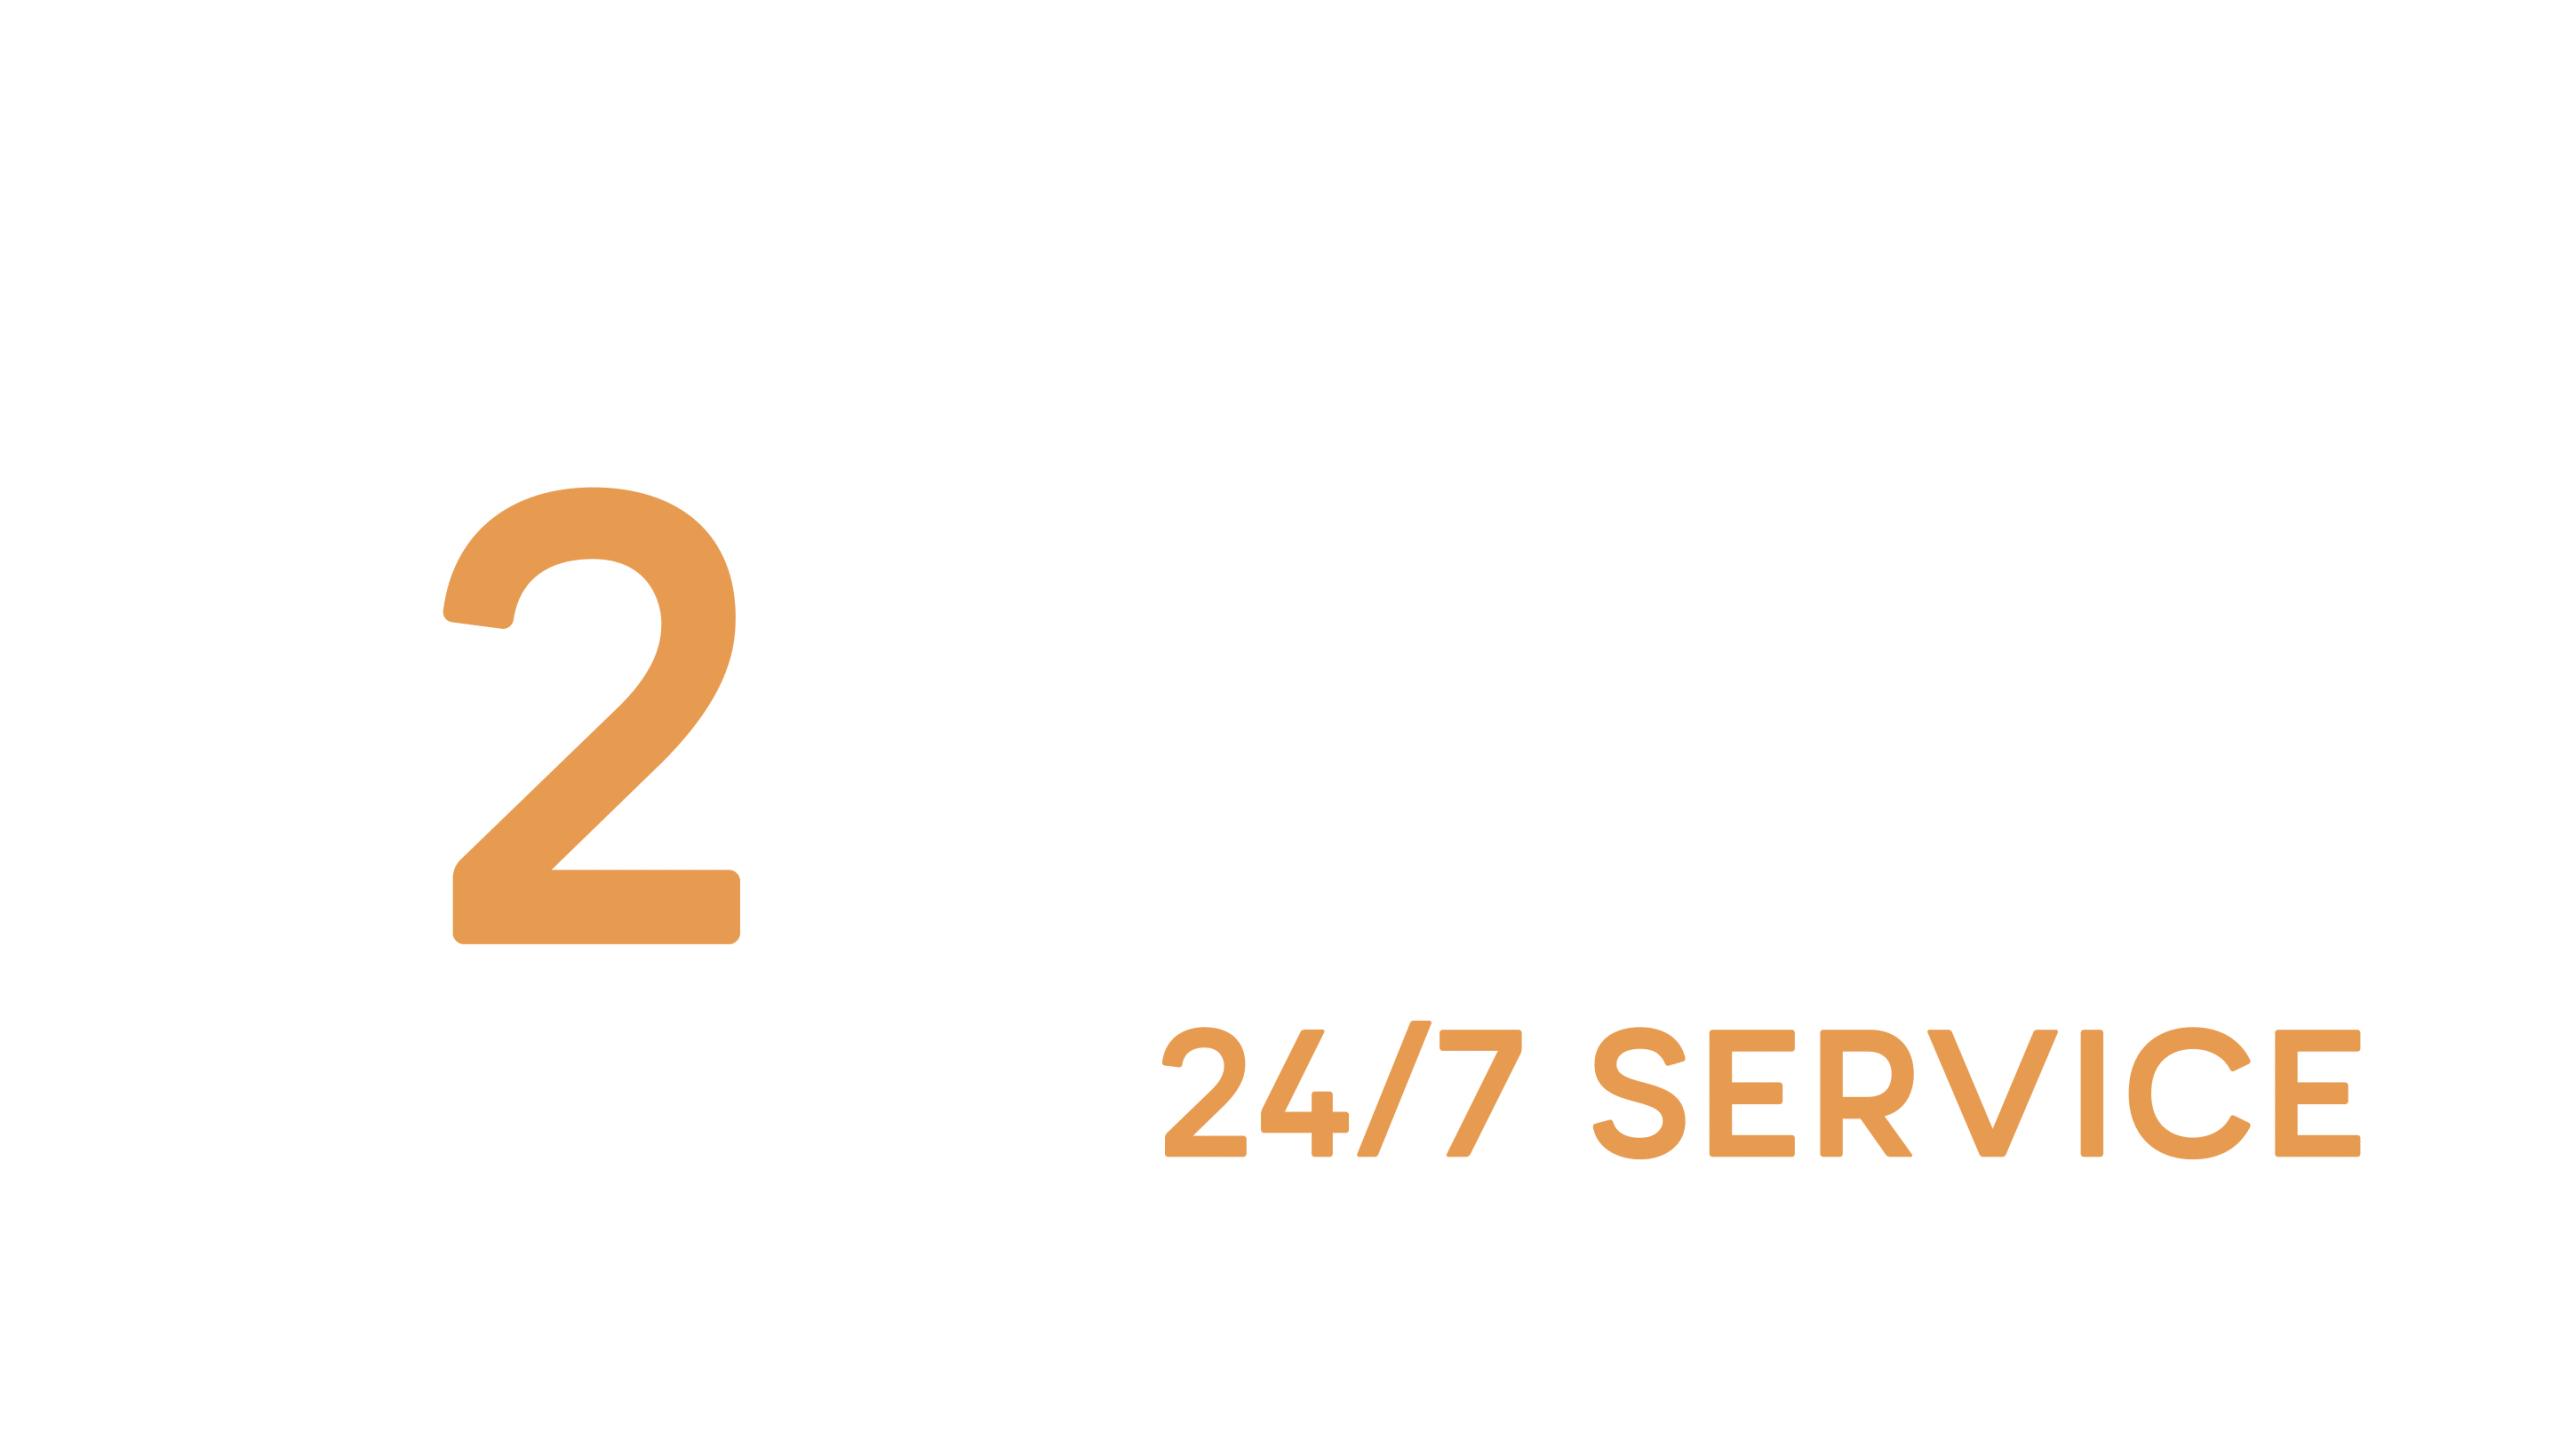 Easy2call Logo